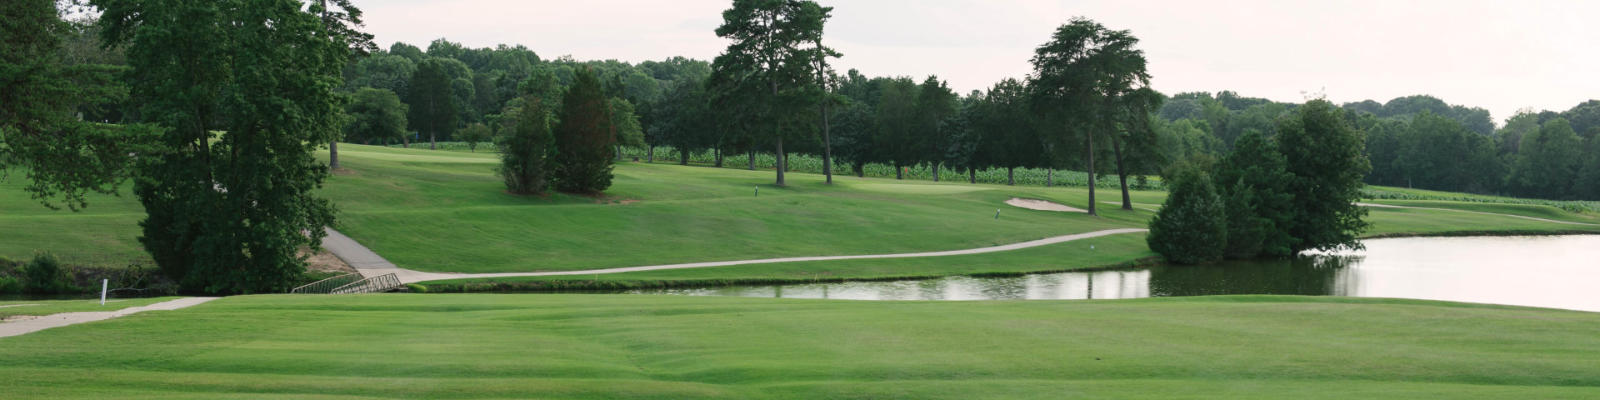 Crooked Tree is an 18-hole golf course in the Piedmont Triad area of North Carolina